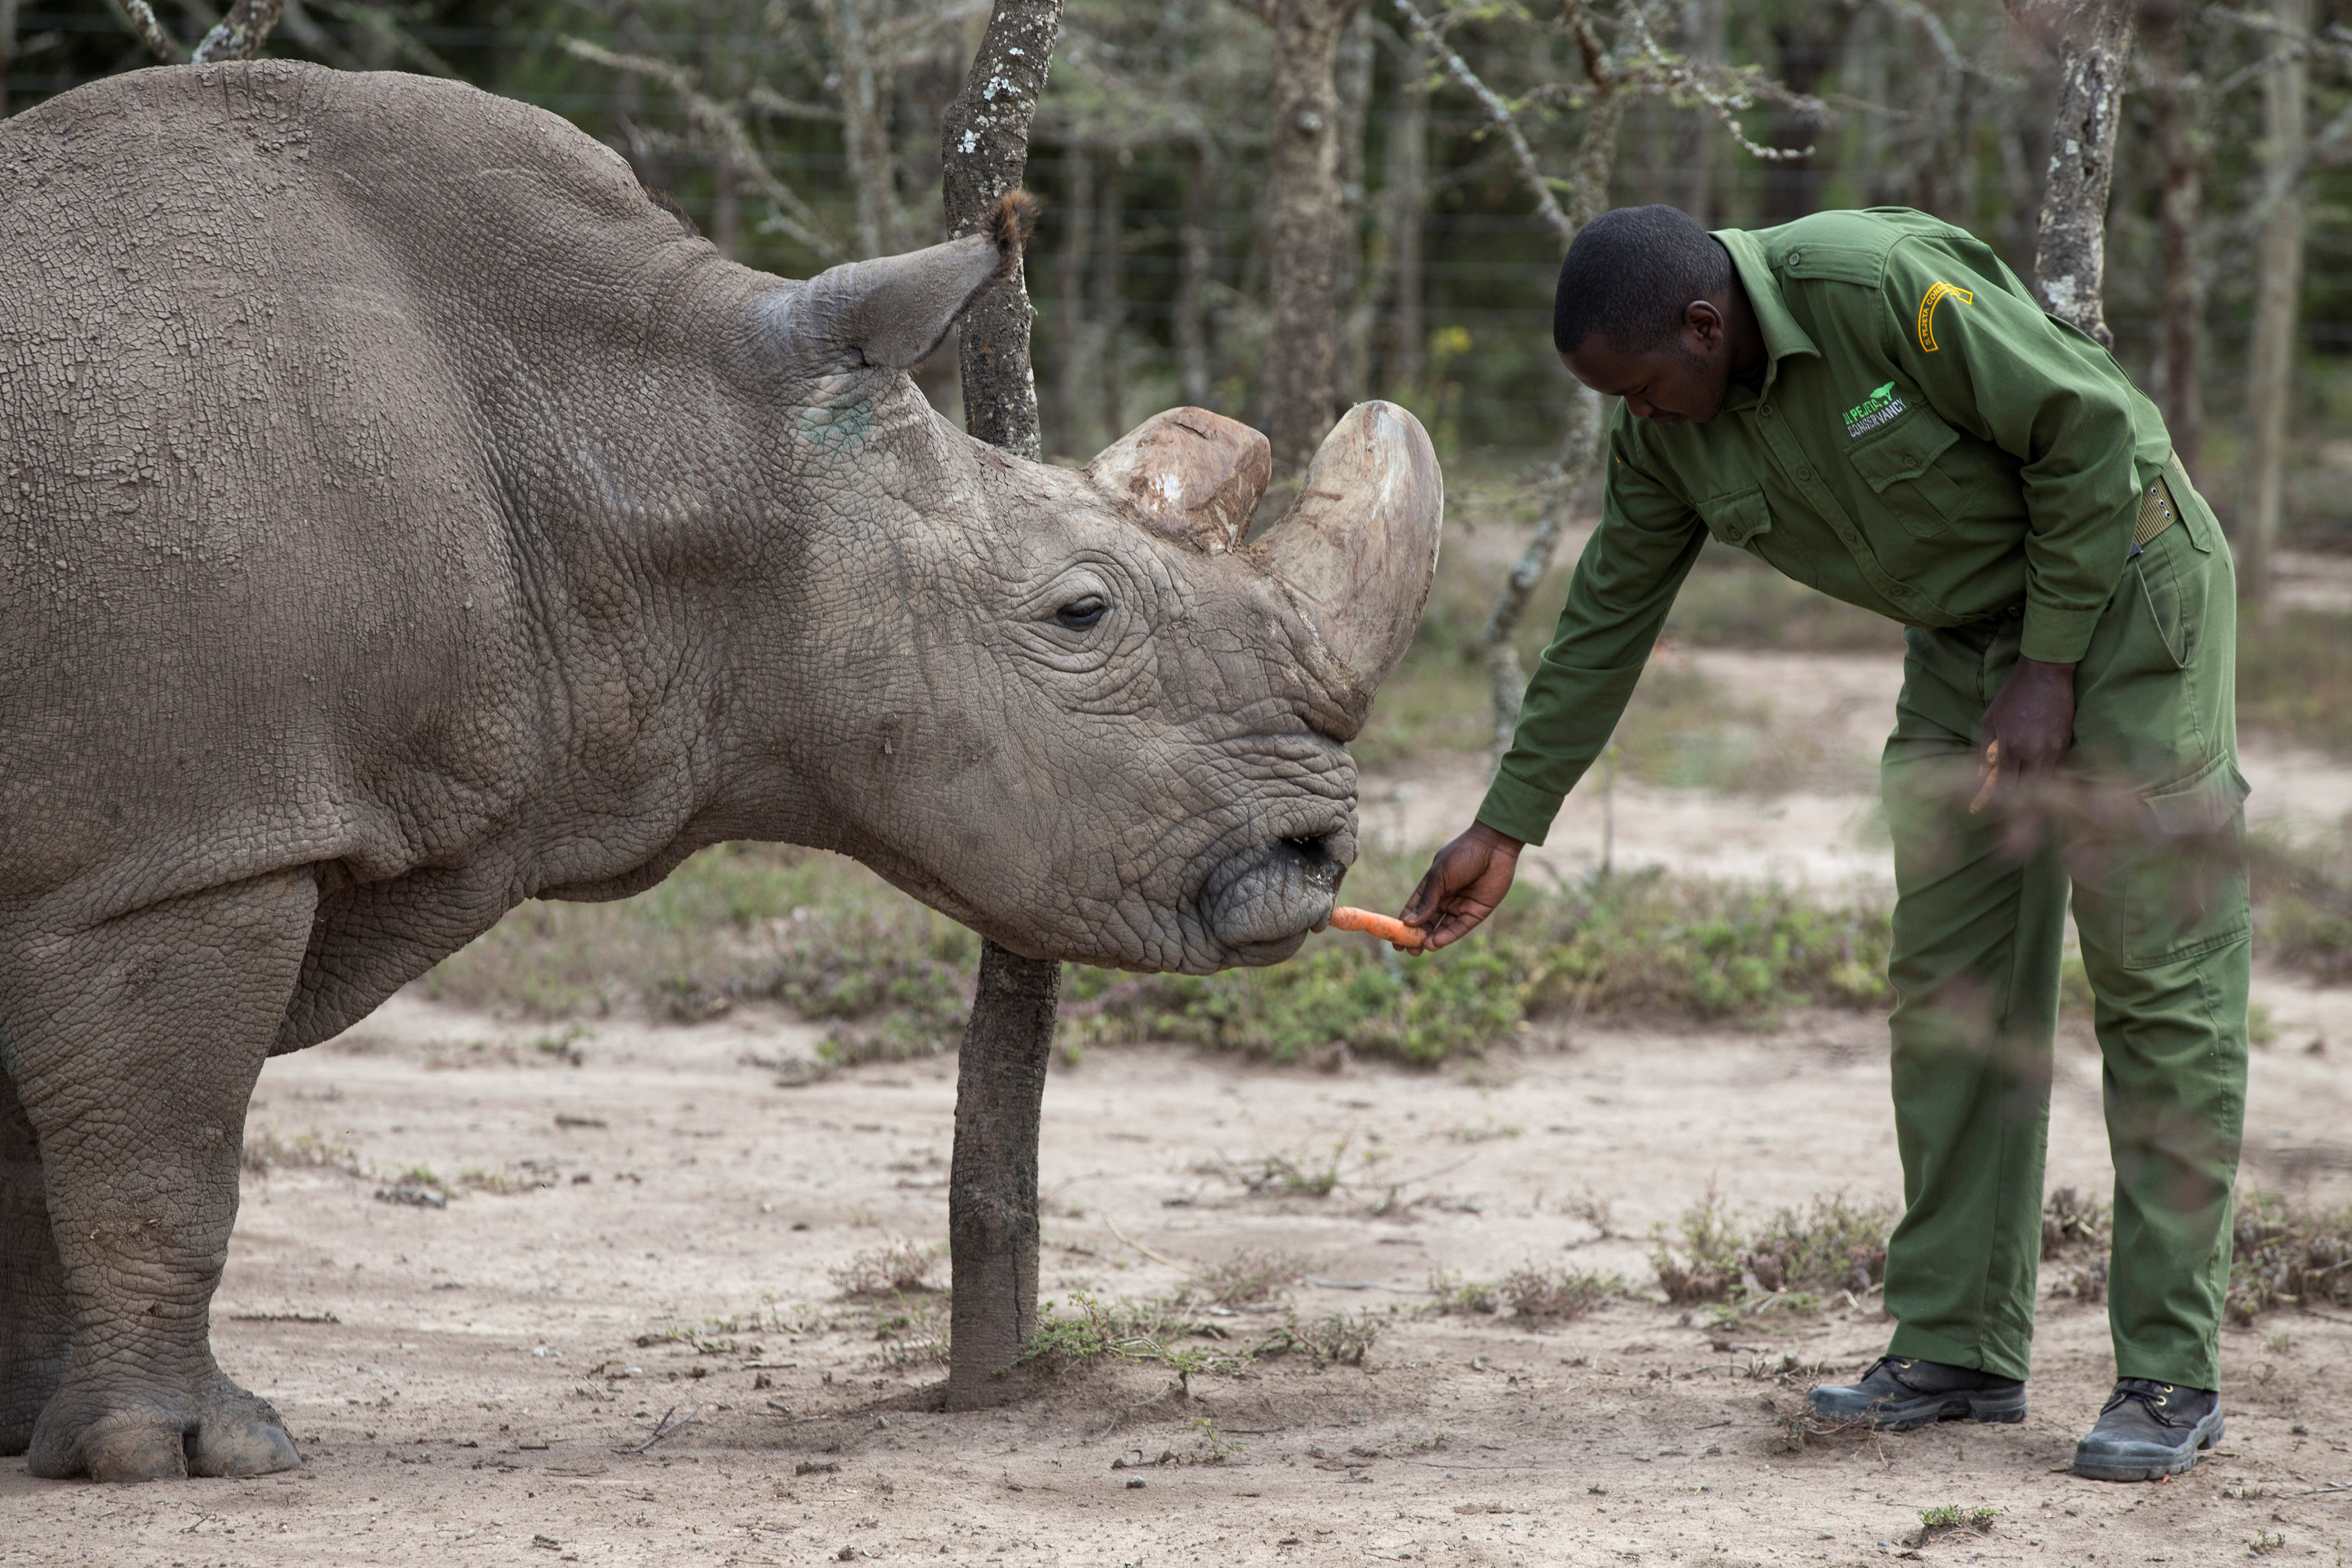 Sudan, the last surviving male northern white rhino, is fed by a warden at